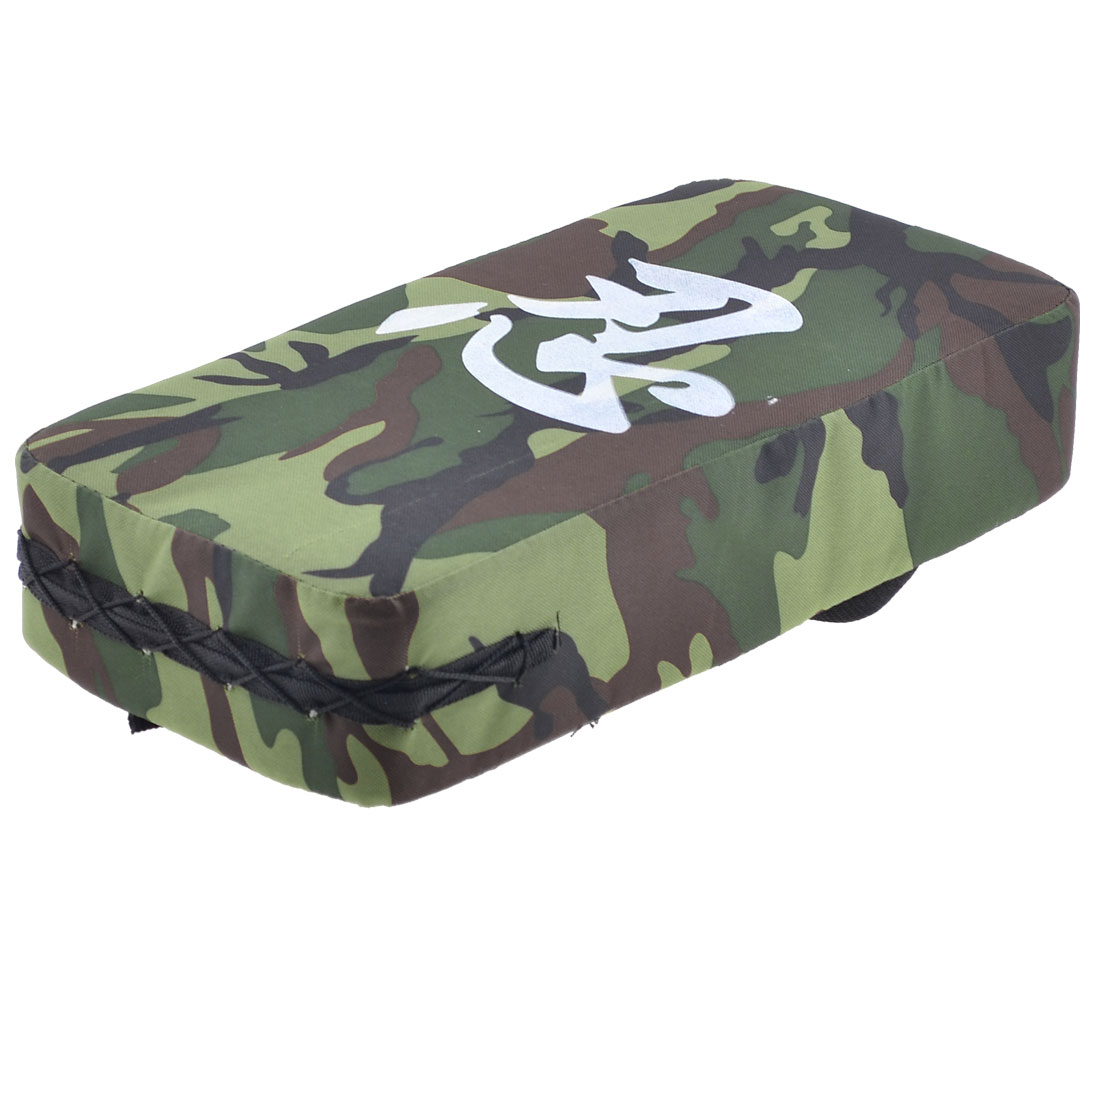 Camouflage Canvas Wrapped Sponge Rectangle Pad Taekwondo Kick Training Target